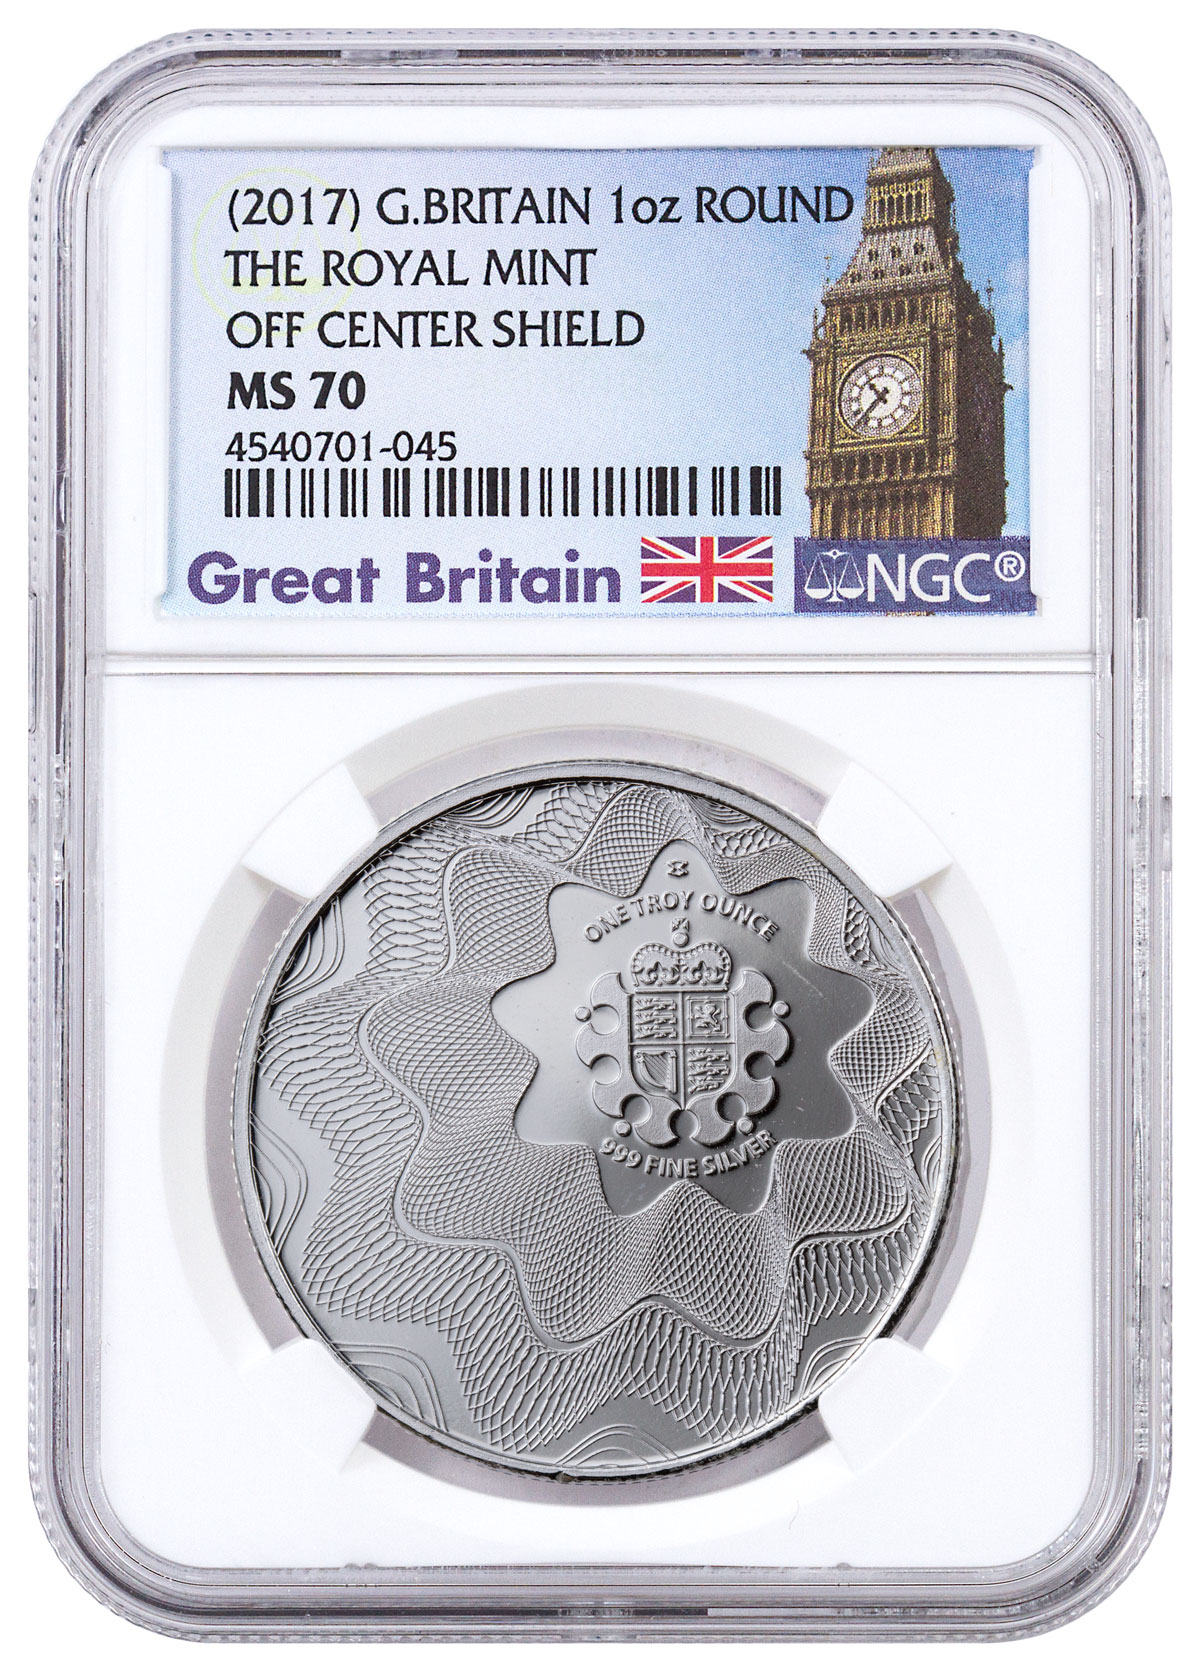 (2017) Great Britain Royal Mint Offset Shield 1 oz. Silver Round NGC MS70 (Exclusive Great Britain Label)